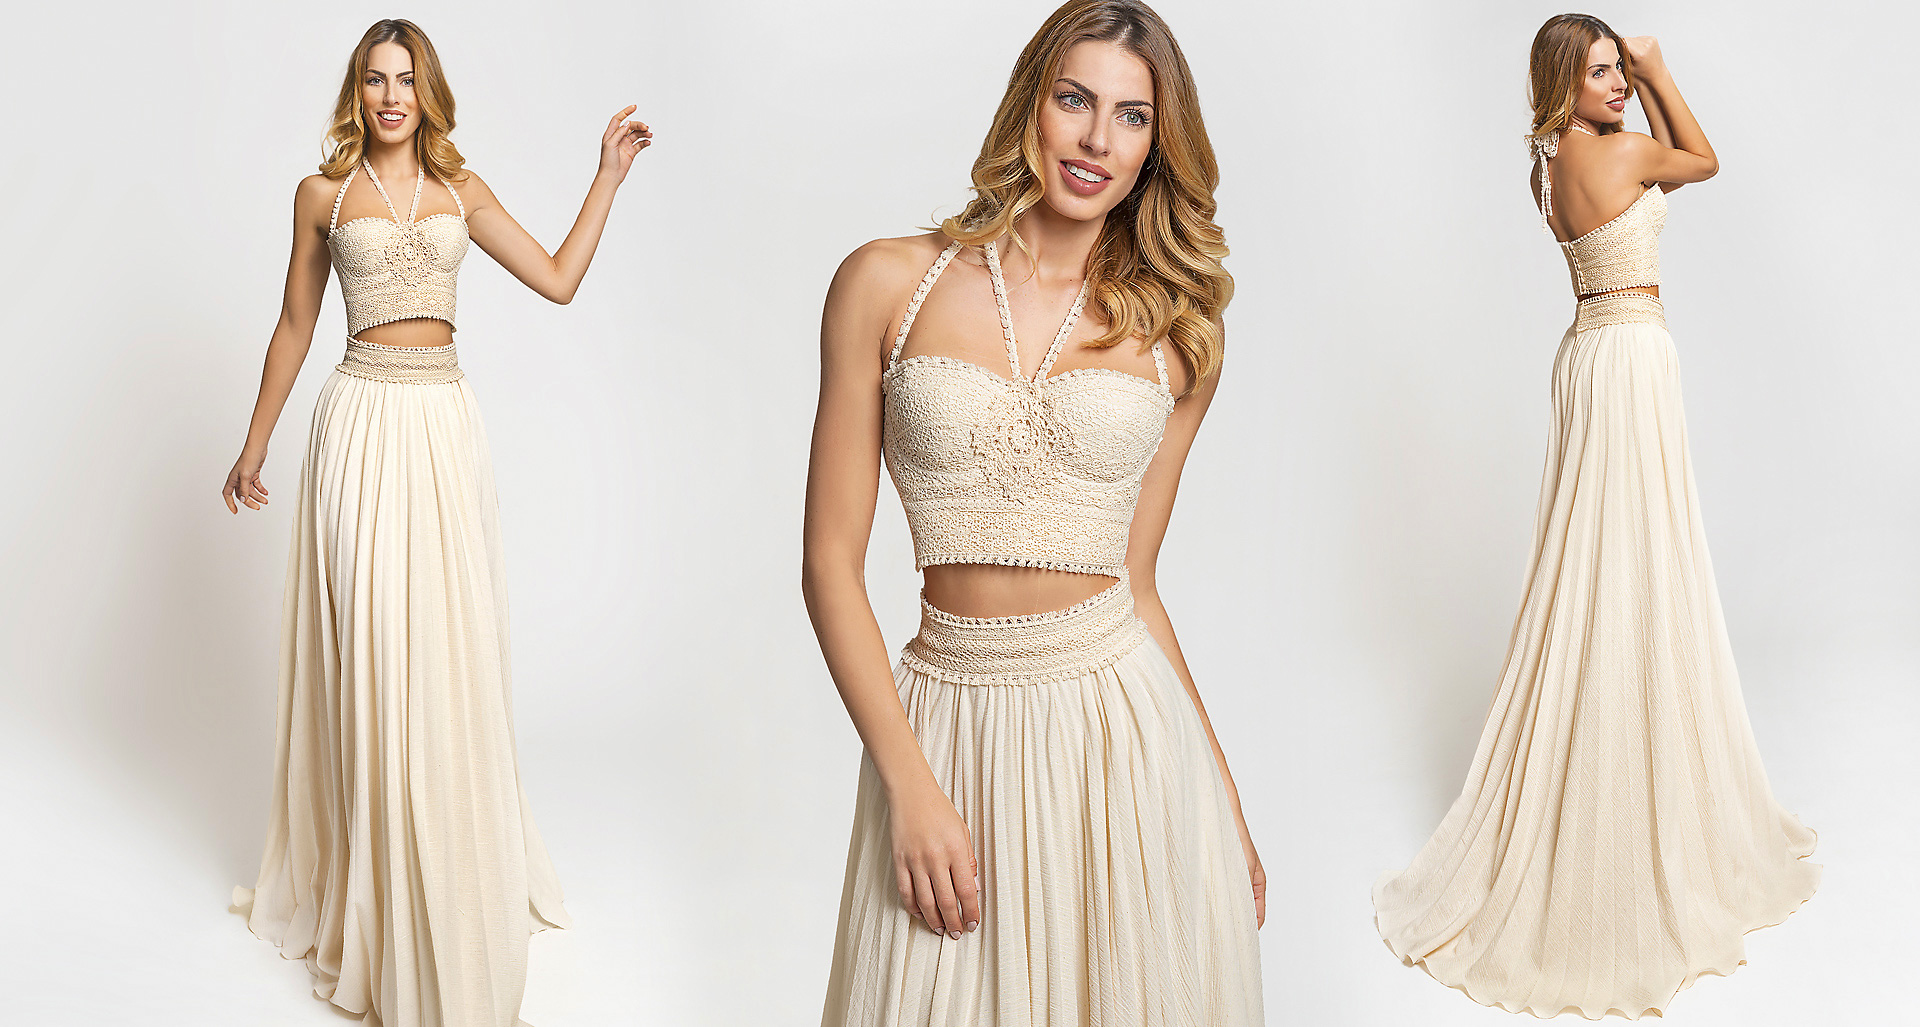 Anemone wedding dress from  Hellenic Vintage Crop Top Collection